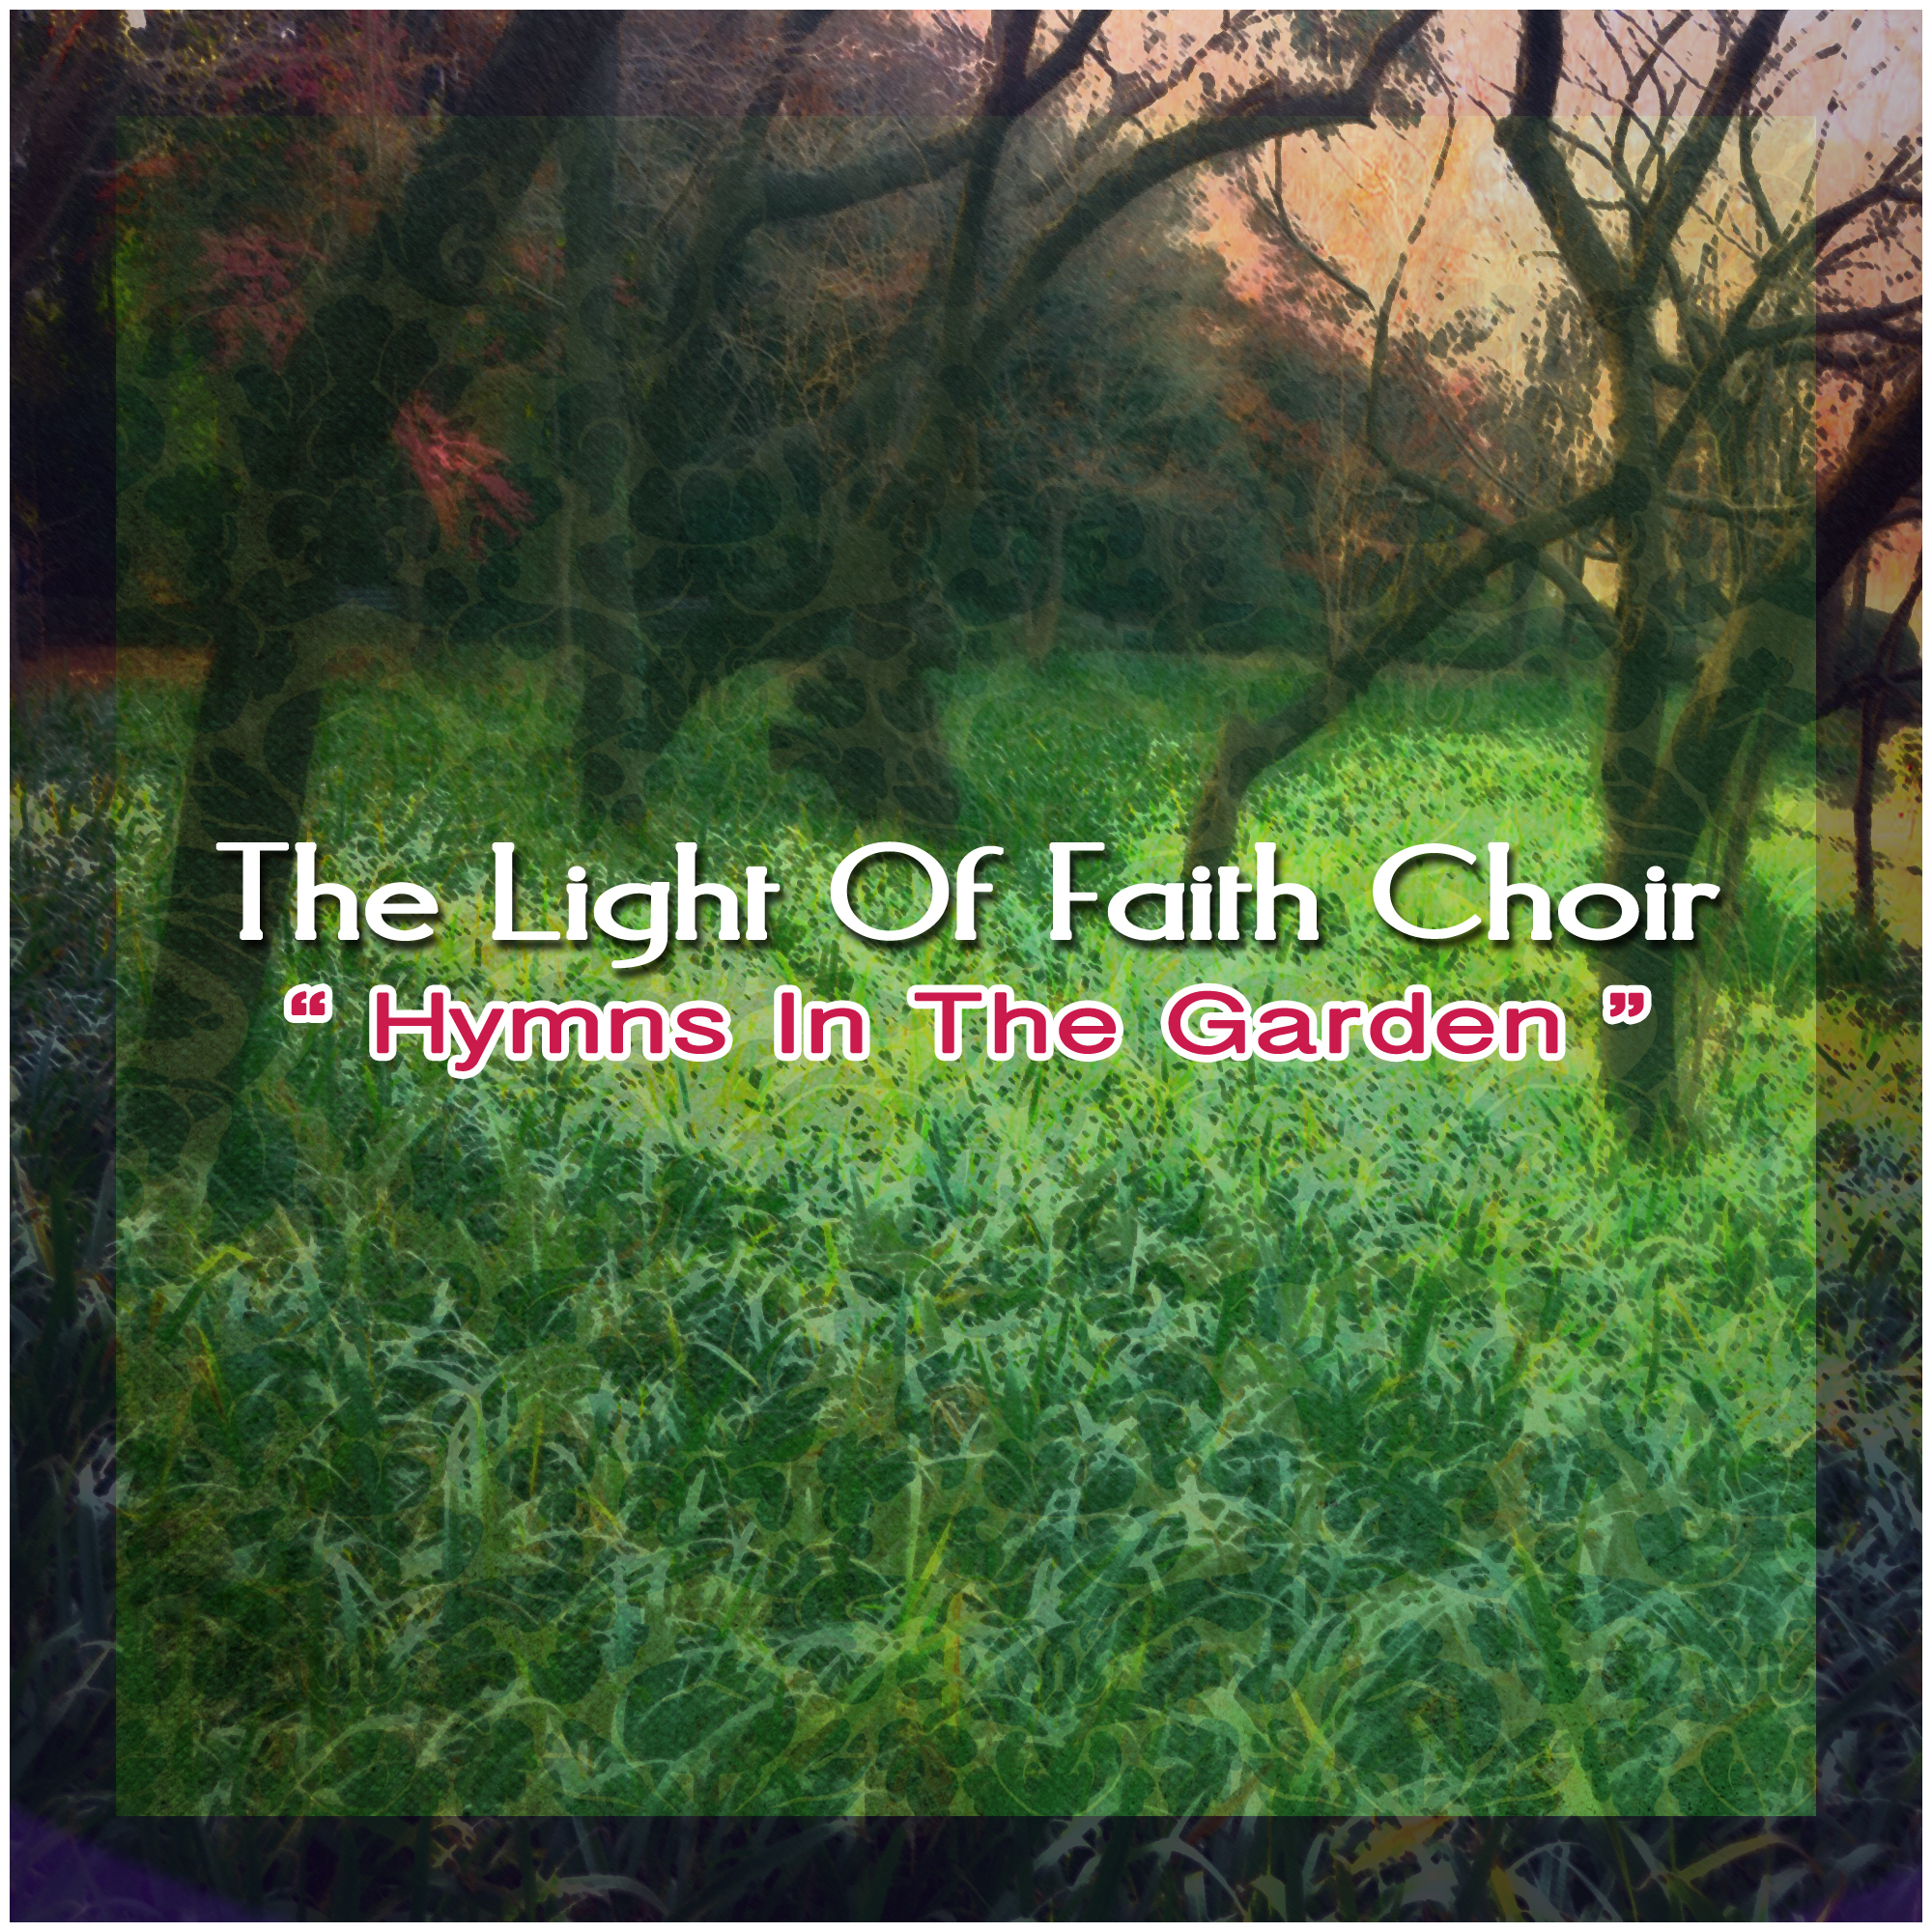 Hymns In The Garden - The Light of Faith Choir